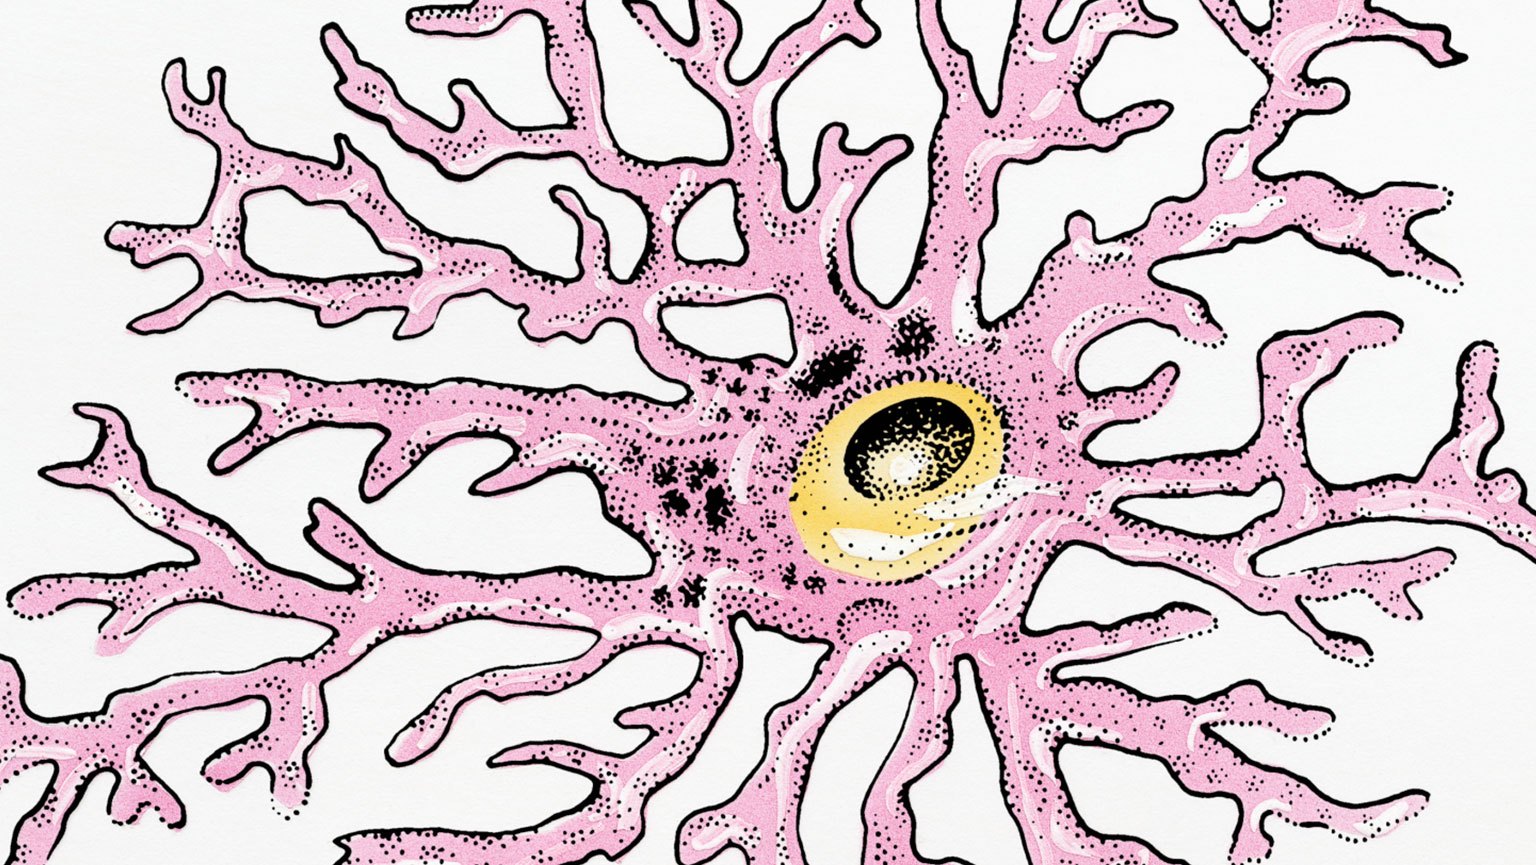 Central Nervous System—Cellular Organization